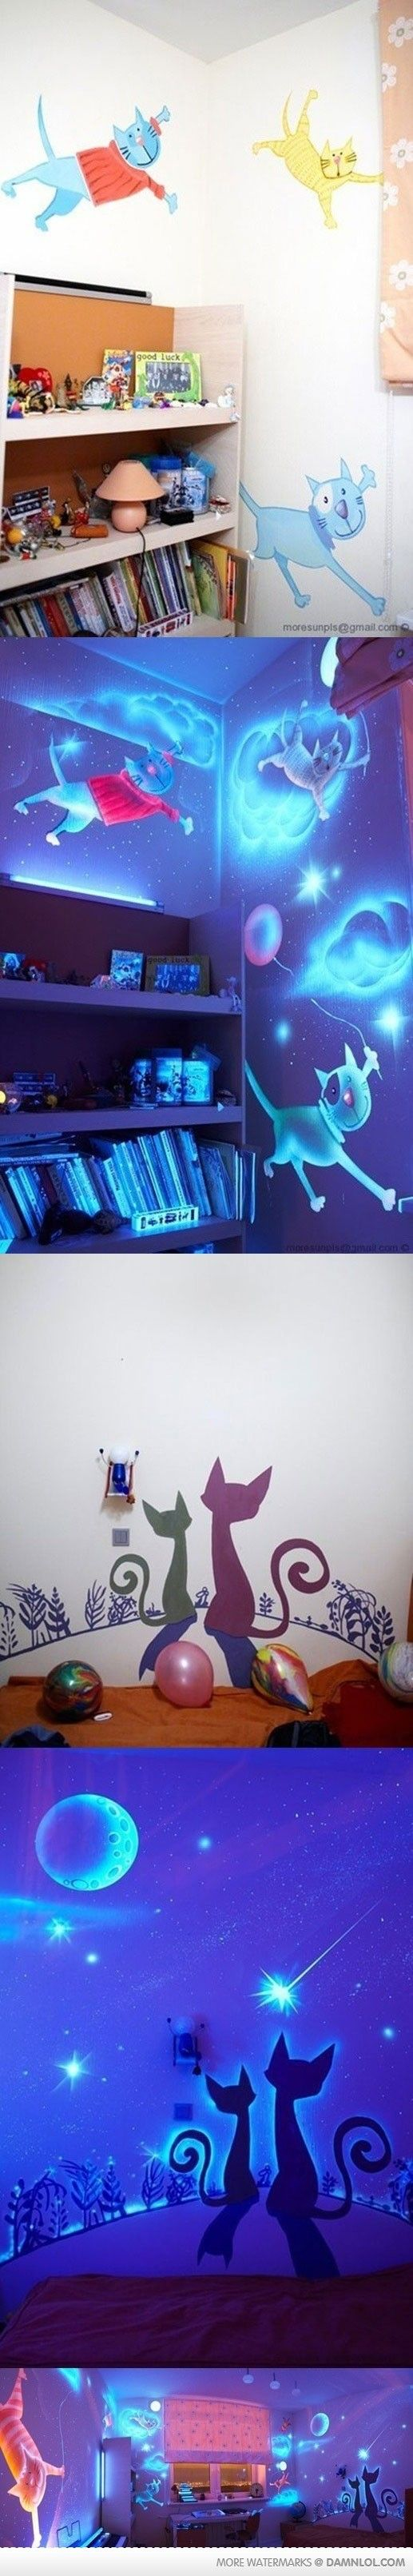 So doing this for my kidsChild Room, Kids Bedrooms, Night Lights, Kids Room, Kidsroom, Kid Rooms, Black Lights, Child Bedrooms, Dark Wall